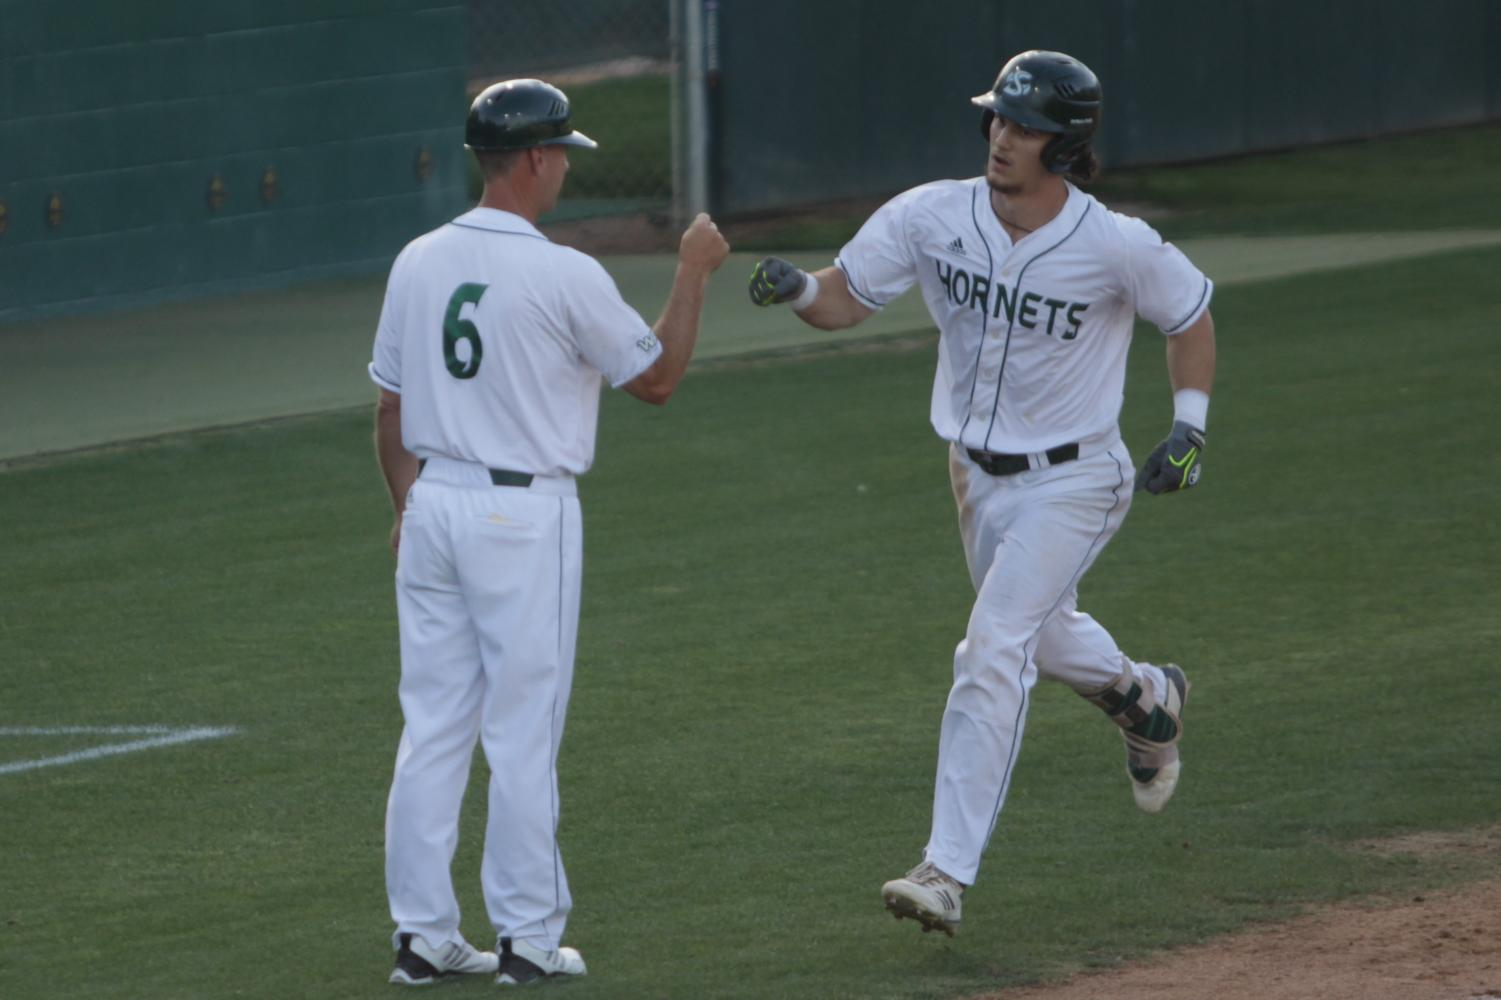 Sacramento State junior outfielder James Outman, right, celebrates with Sac State coach Reggie Christiansen, left, after Outman hit a home run against Seattle University on Saturday, May 5, 2018 at John Smith Field. Outman was selected by the Los Angeles Dodgers in the seventh round of the 2018 MLB Draft